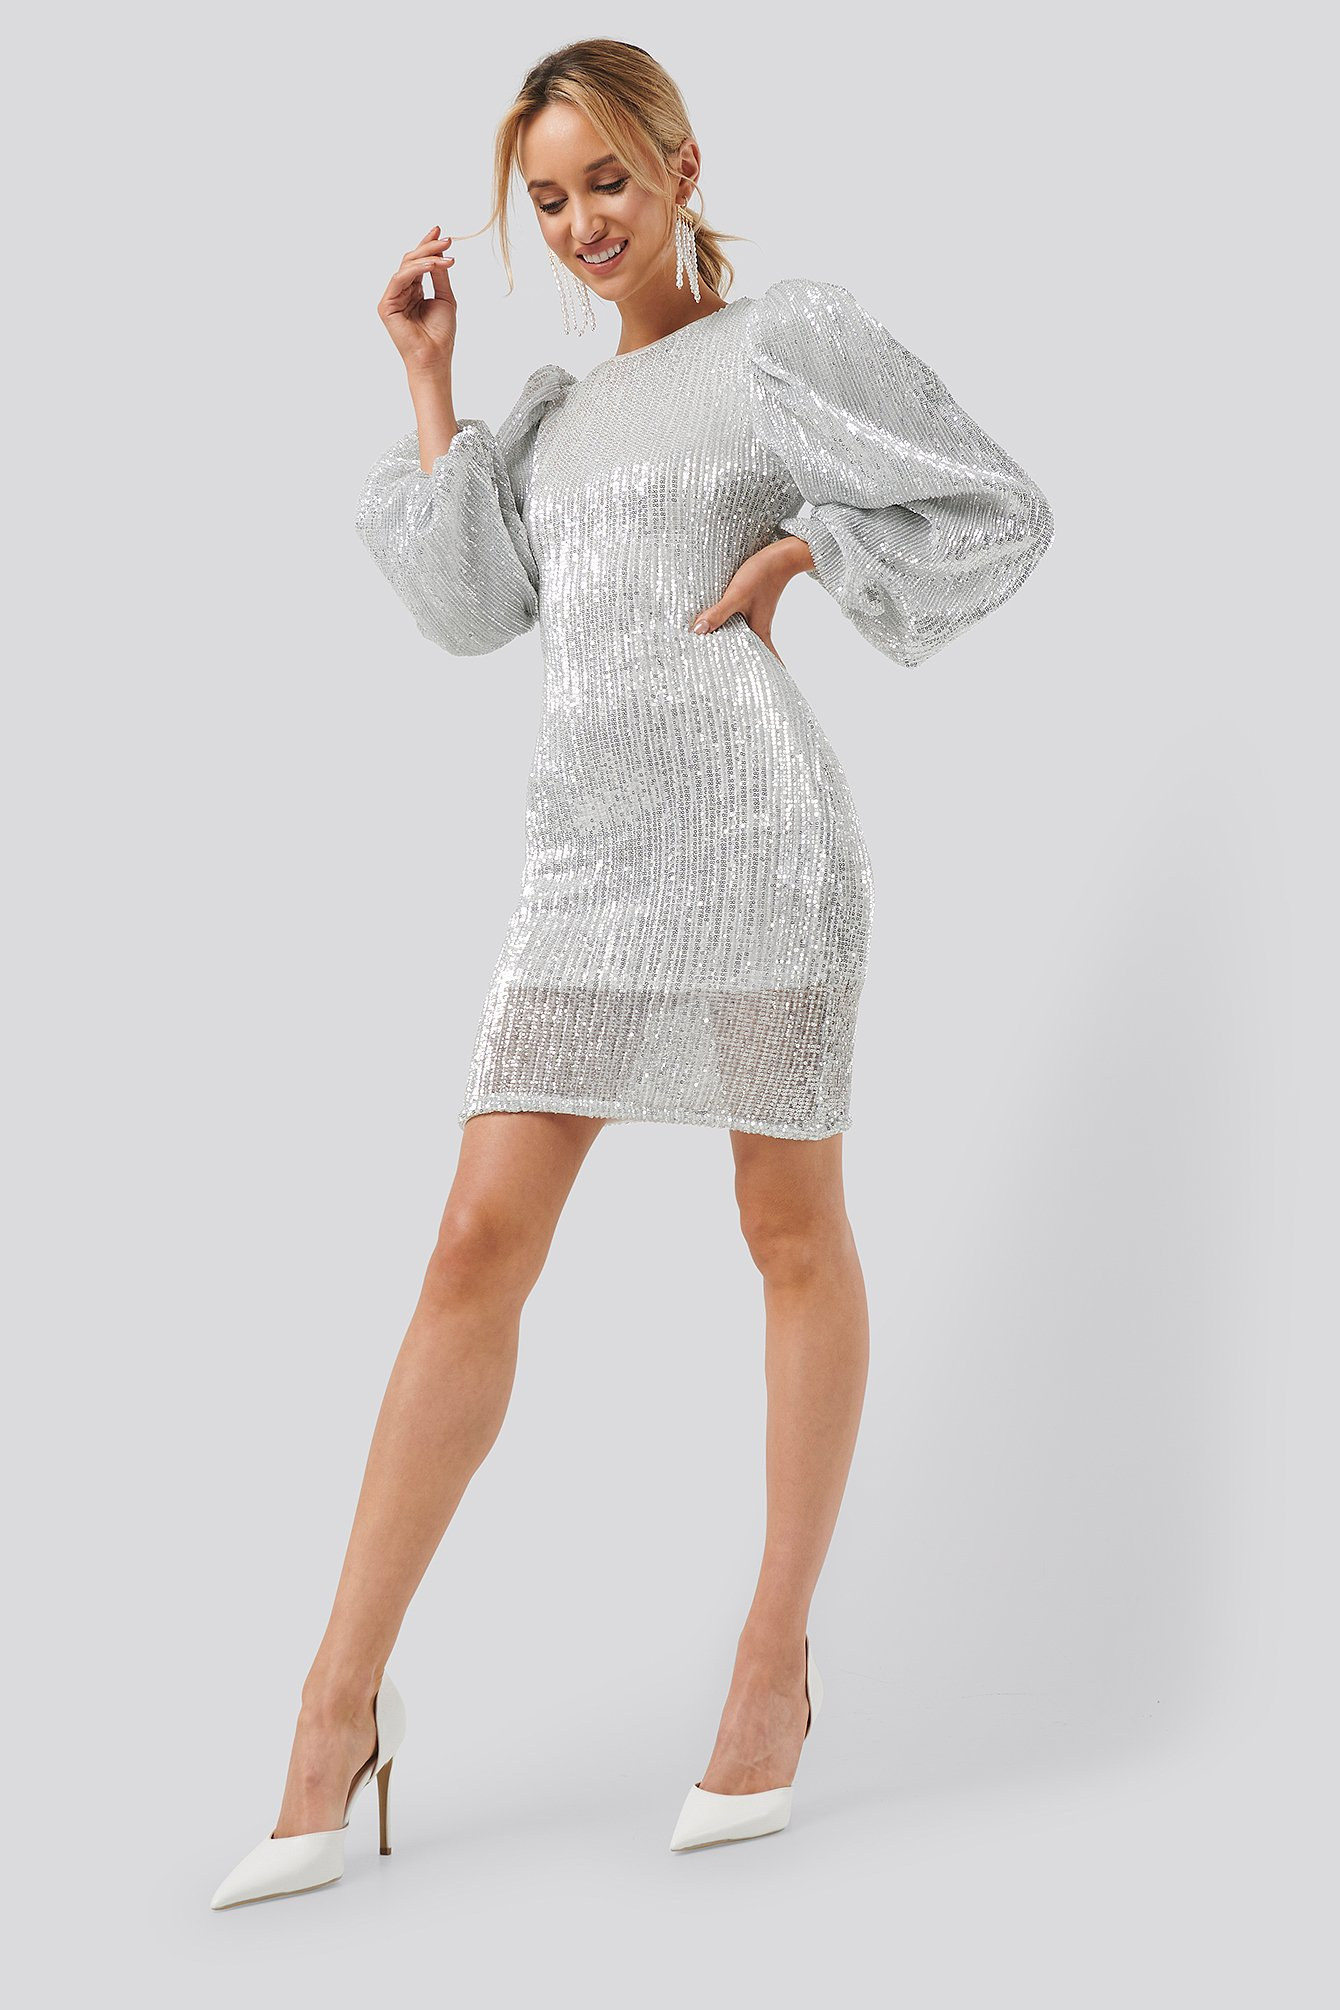 na-kd party -  Puff Sleeve Sequin Mini Dress - Silver